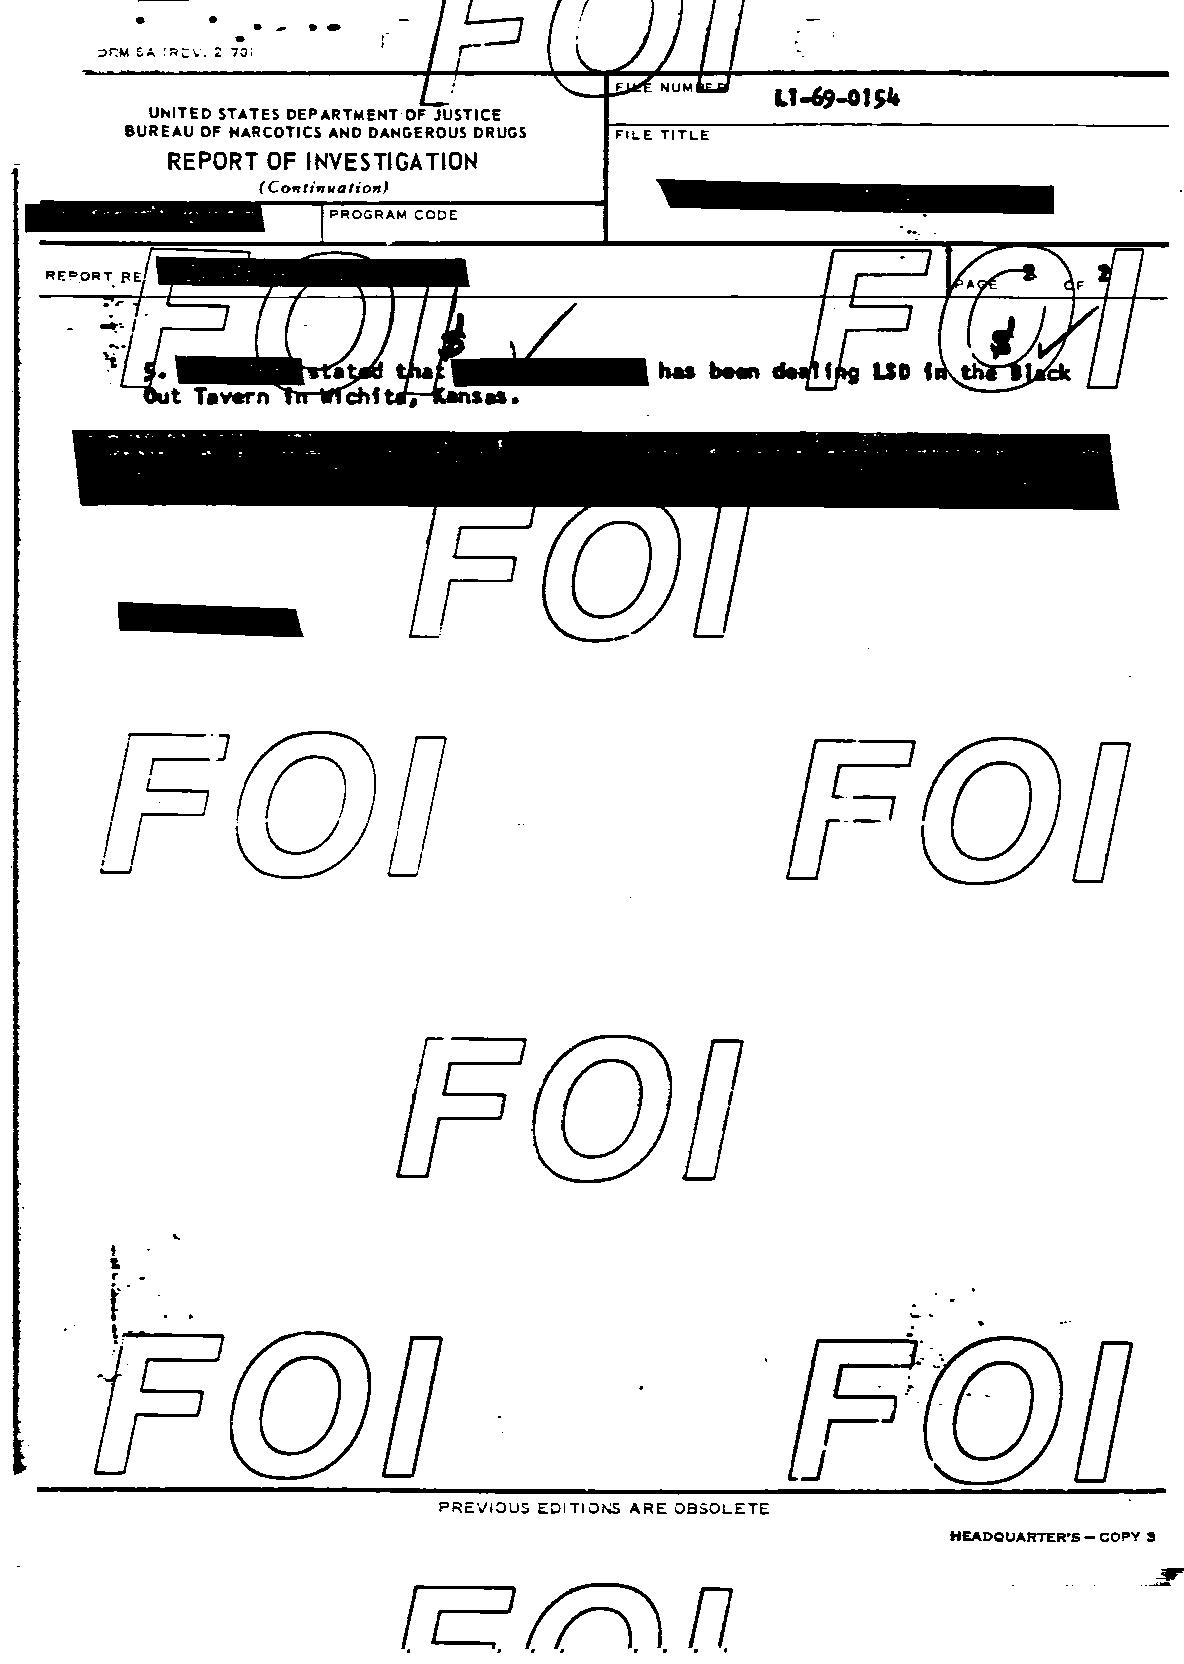 [photo: The Black Out Tavern (sic) listed on Department of Justice Report of Investigation form obtained through the Freedom of Information Act.]